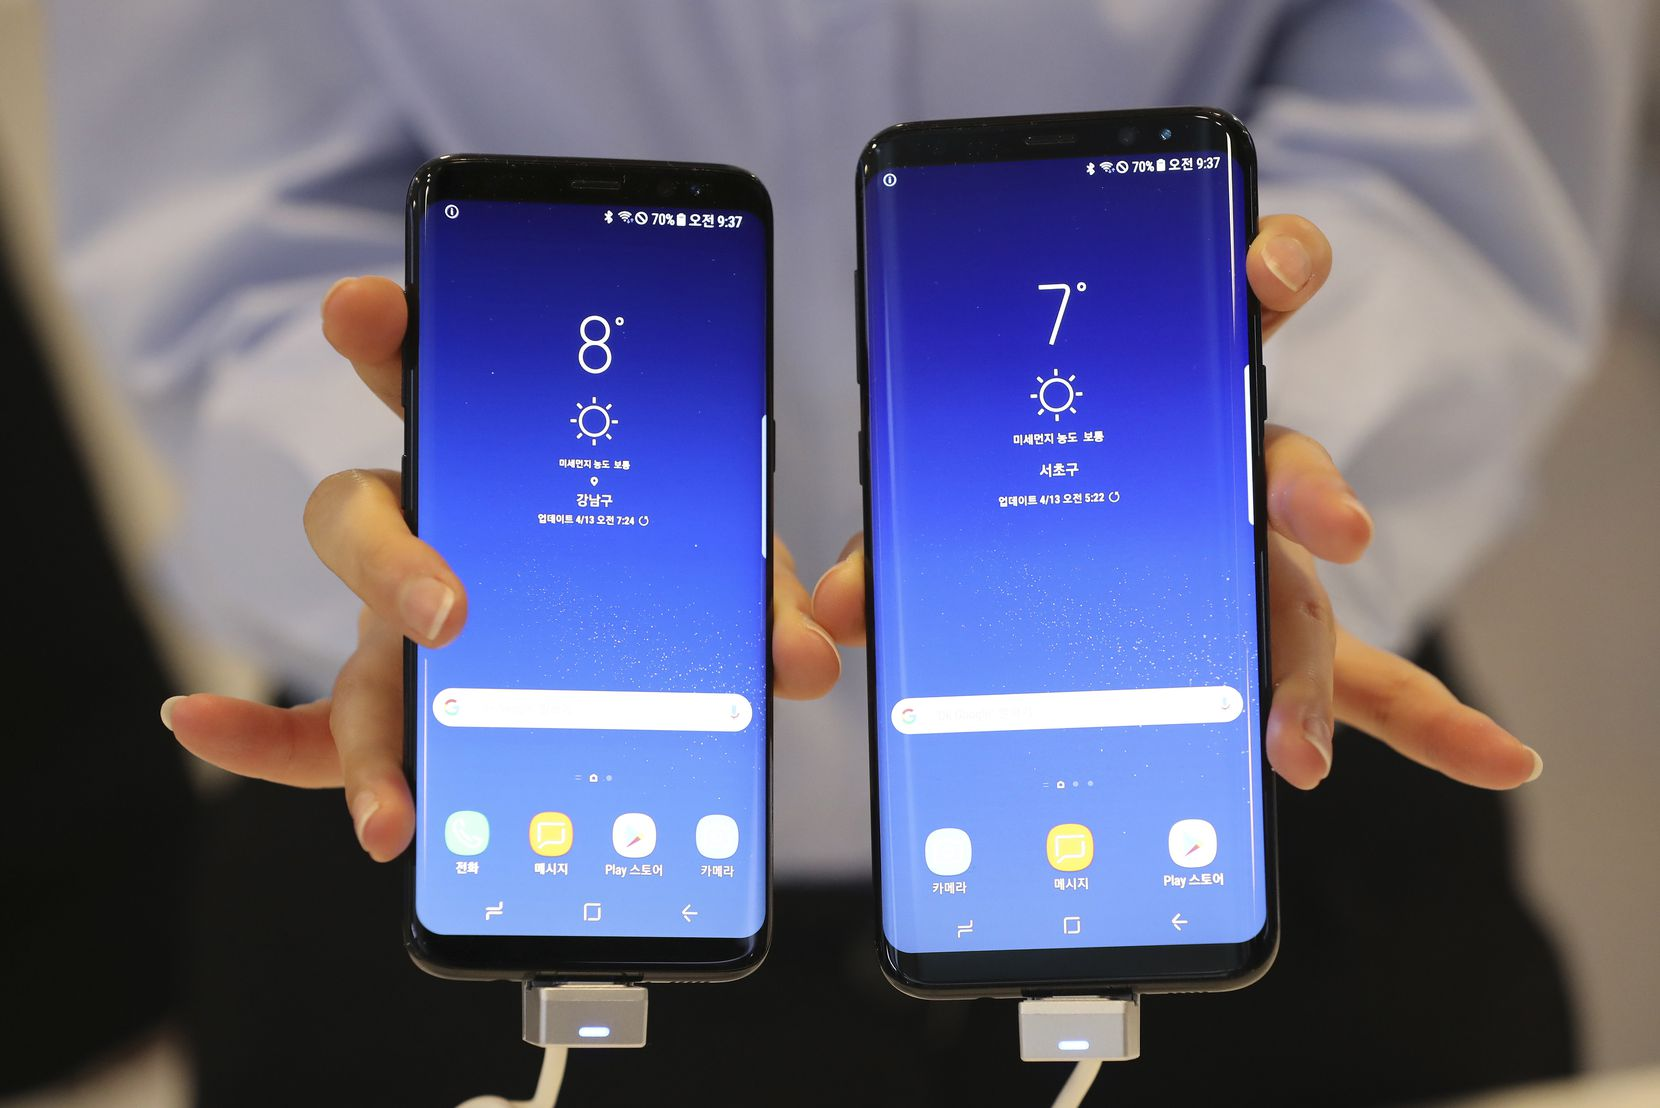 Samsung Electronics' Galaxy S8 and S8+ smartphones are shown off during a media day in Seoul, South Korea, Thursday, April 13, 2017.